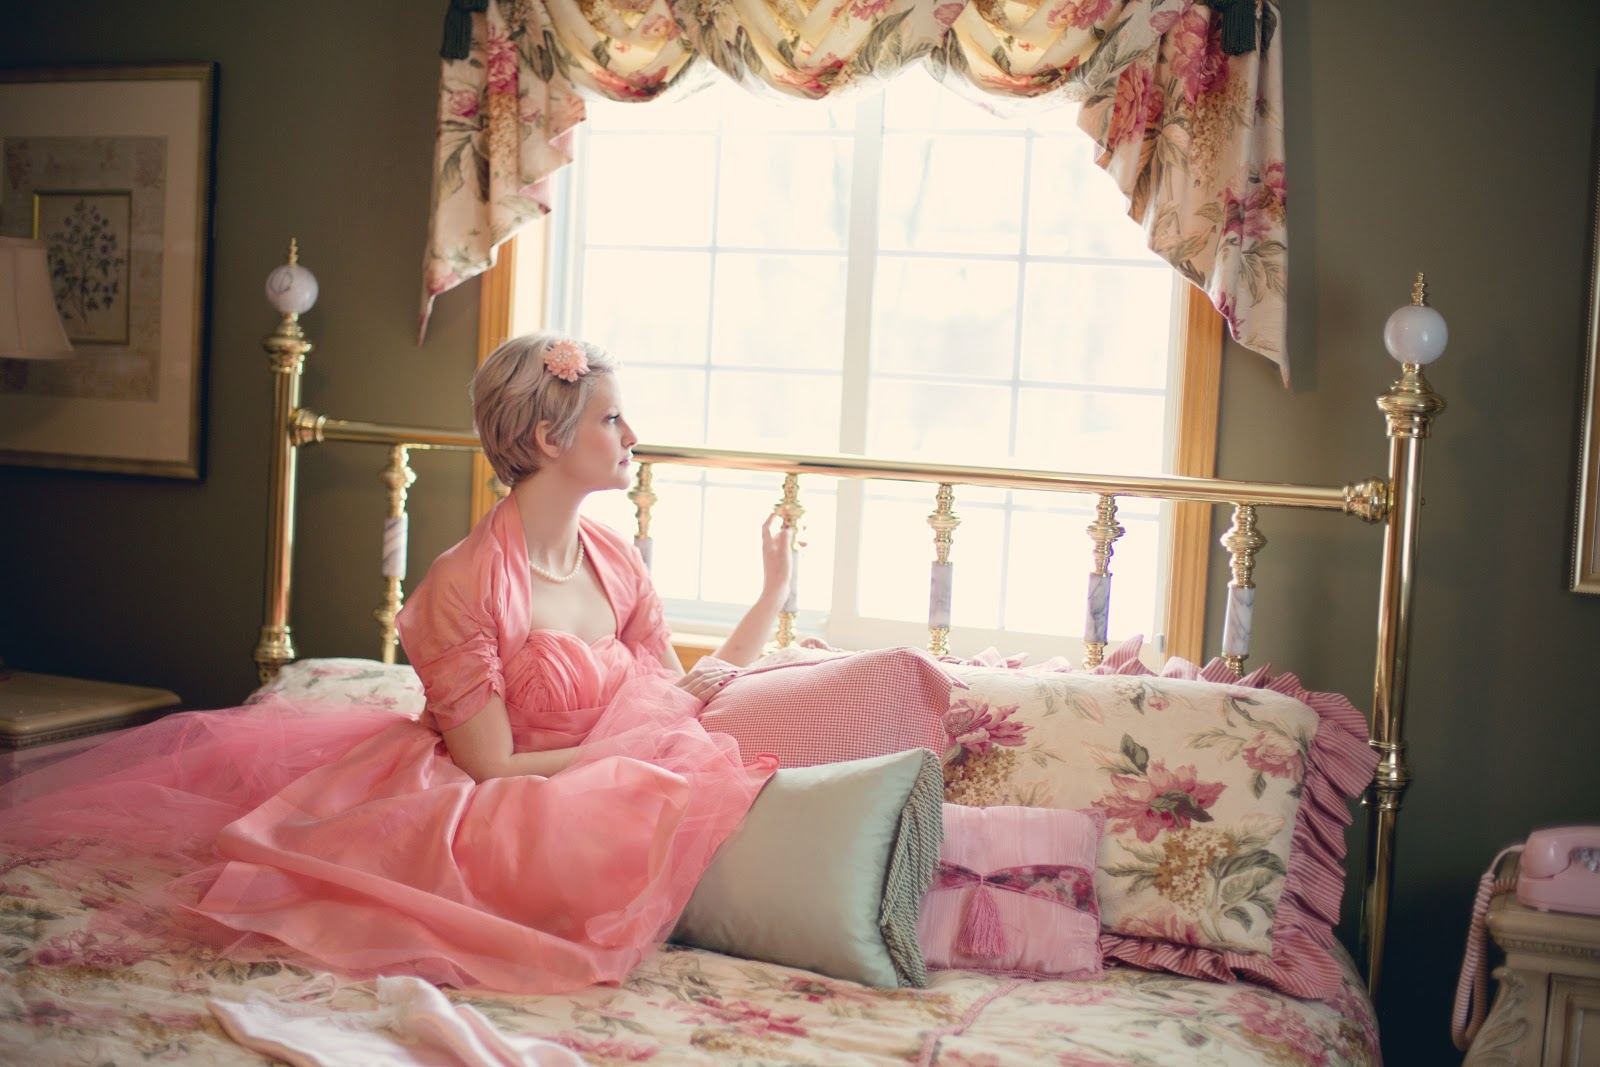 vintage-woman-on-bed-retro-bedroom-37738.jpeg